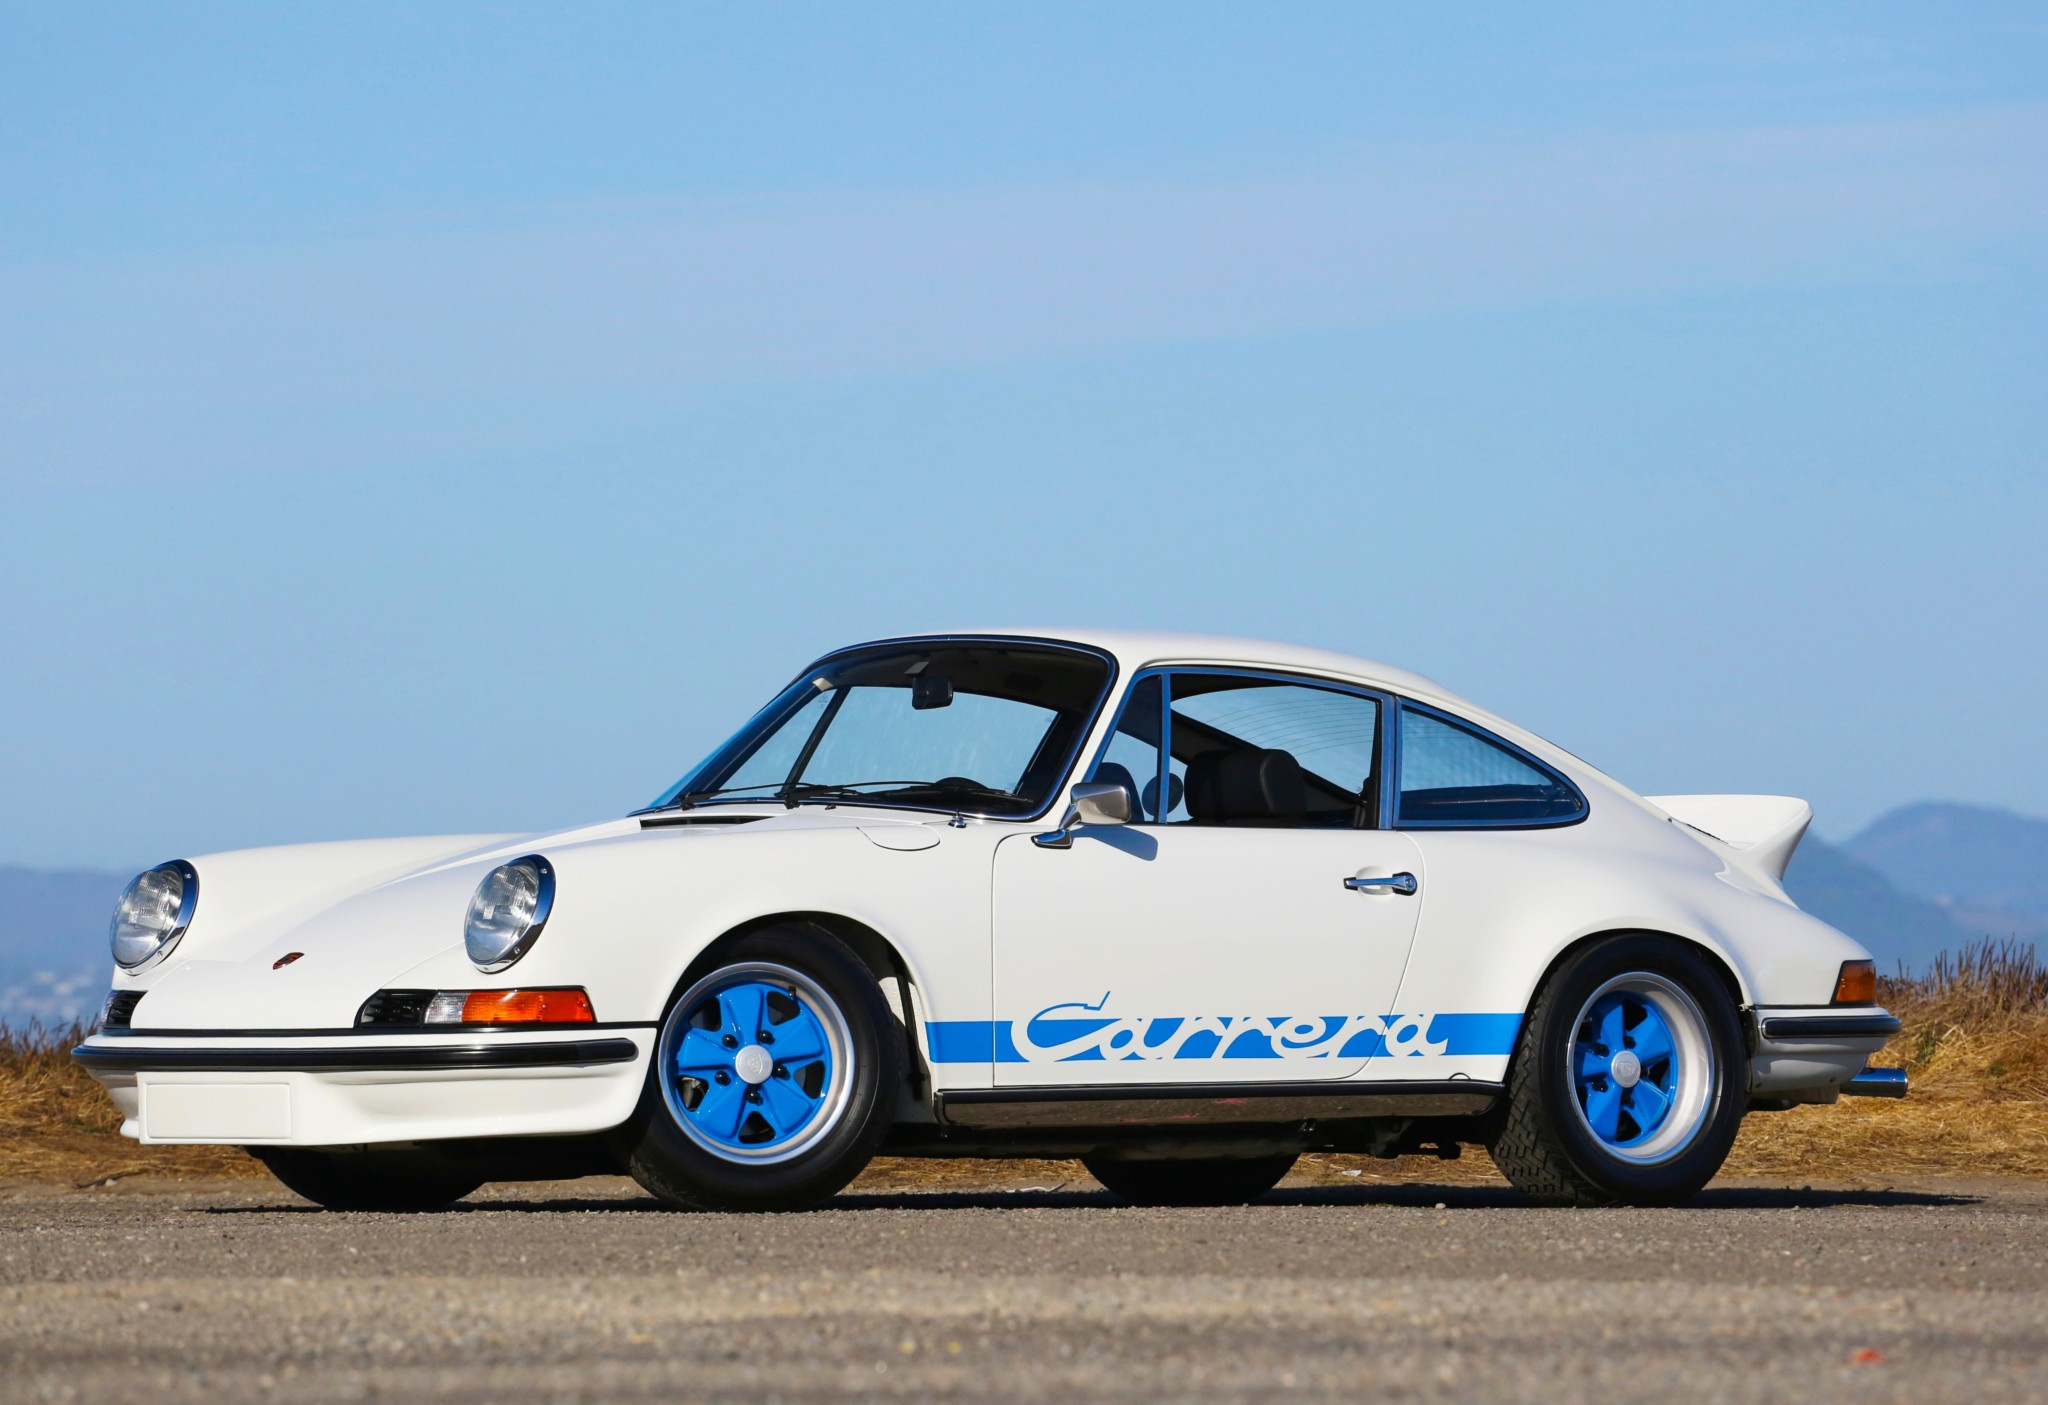 Porsche-911-Carrera-RS-2.7-1973-for-sale-14